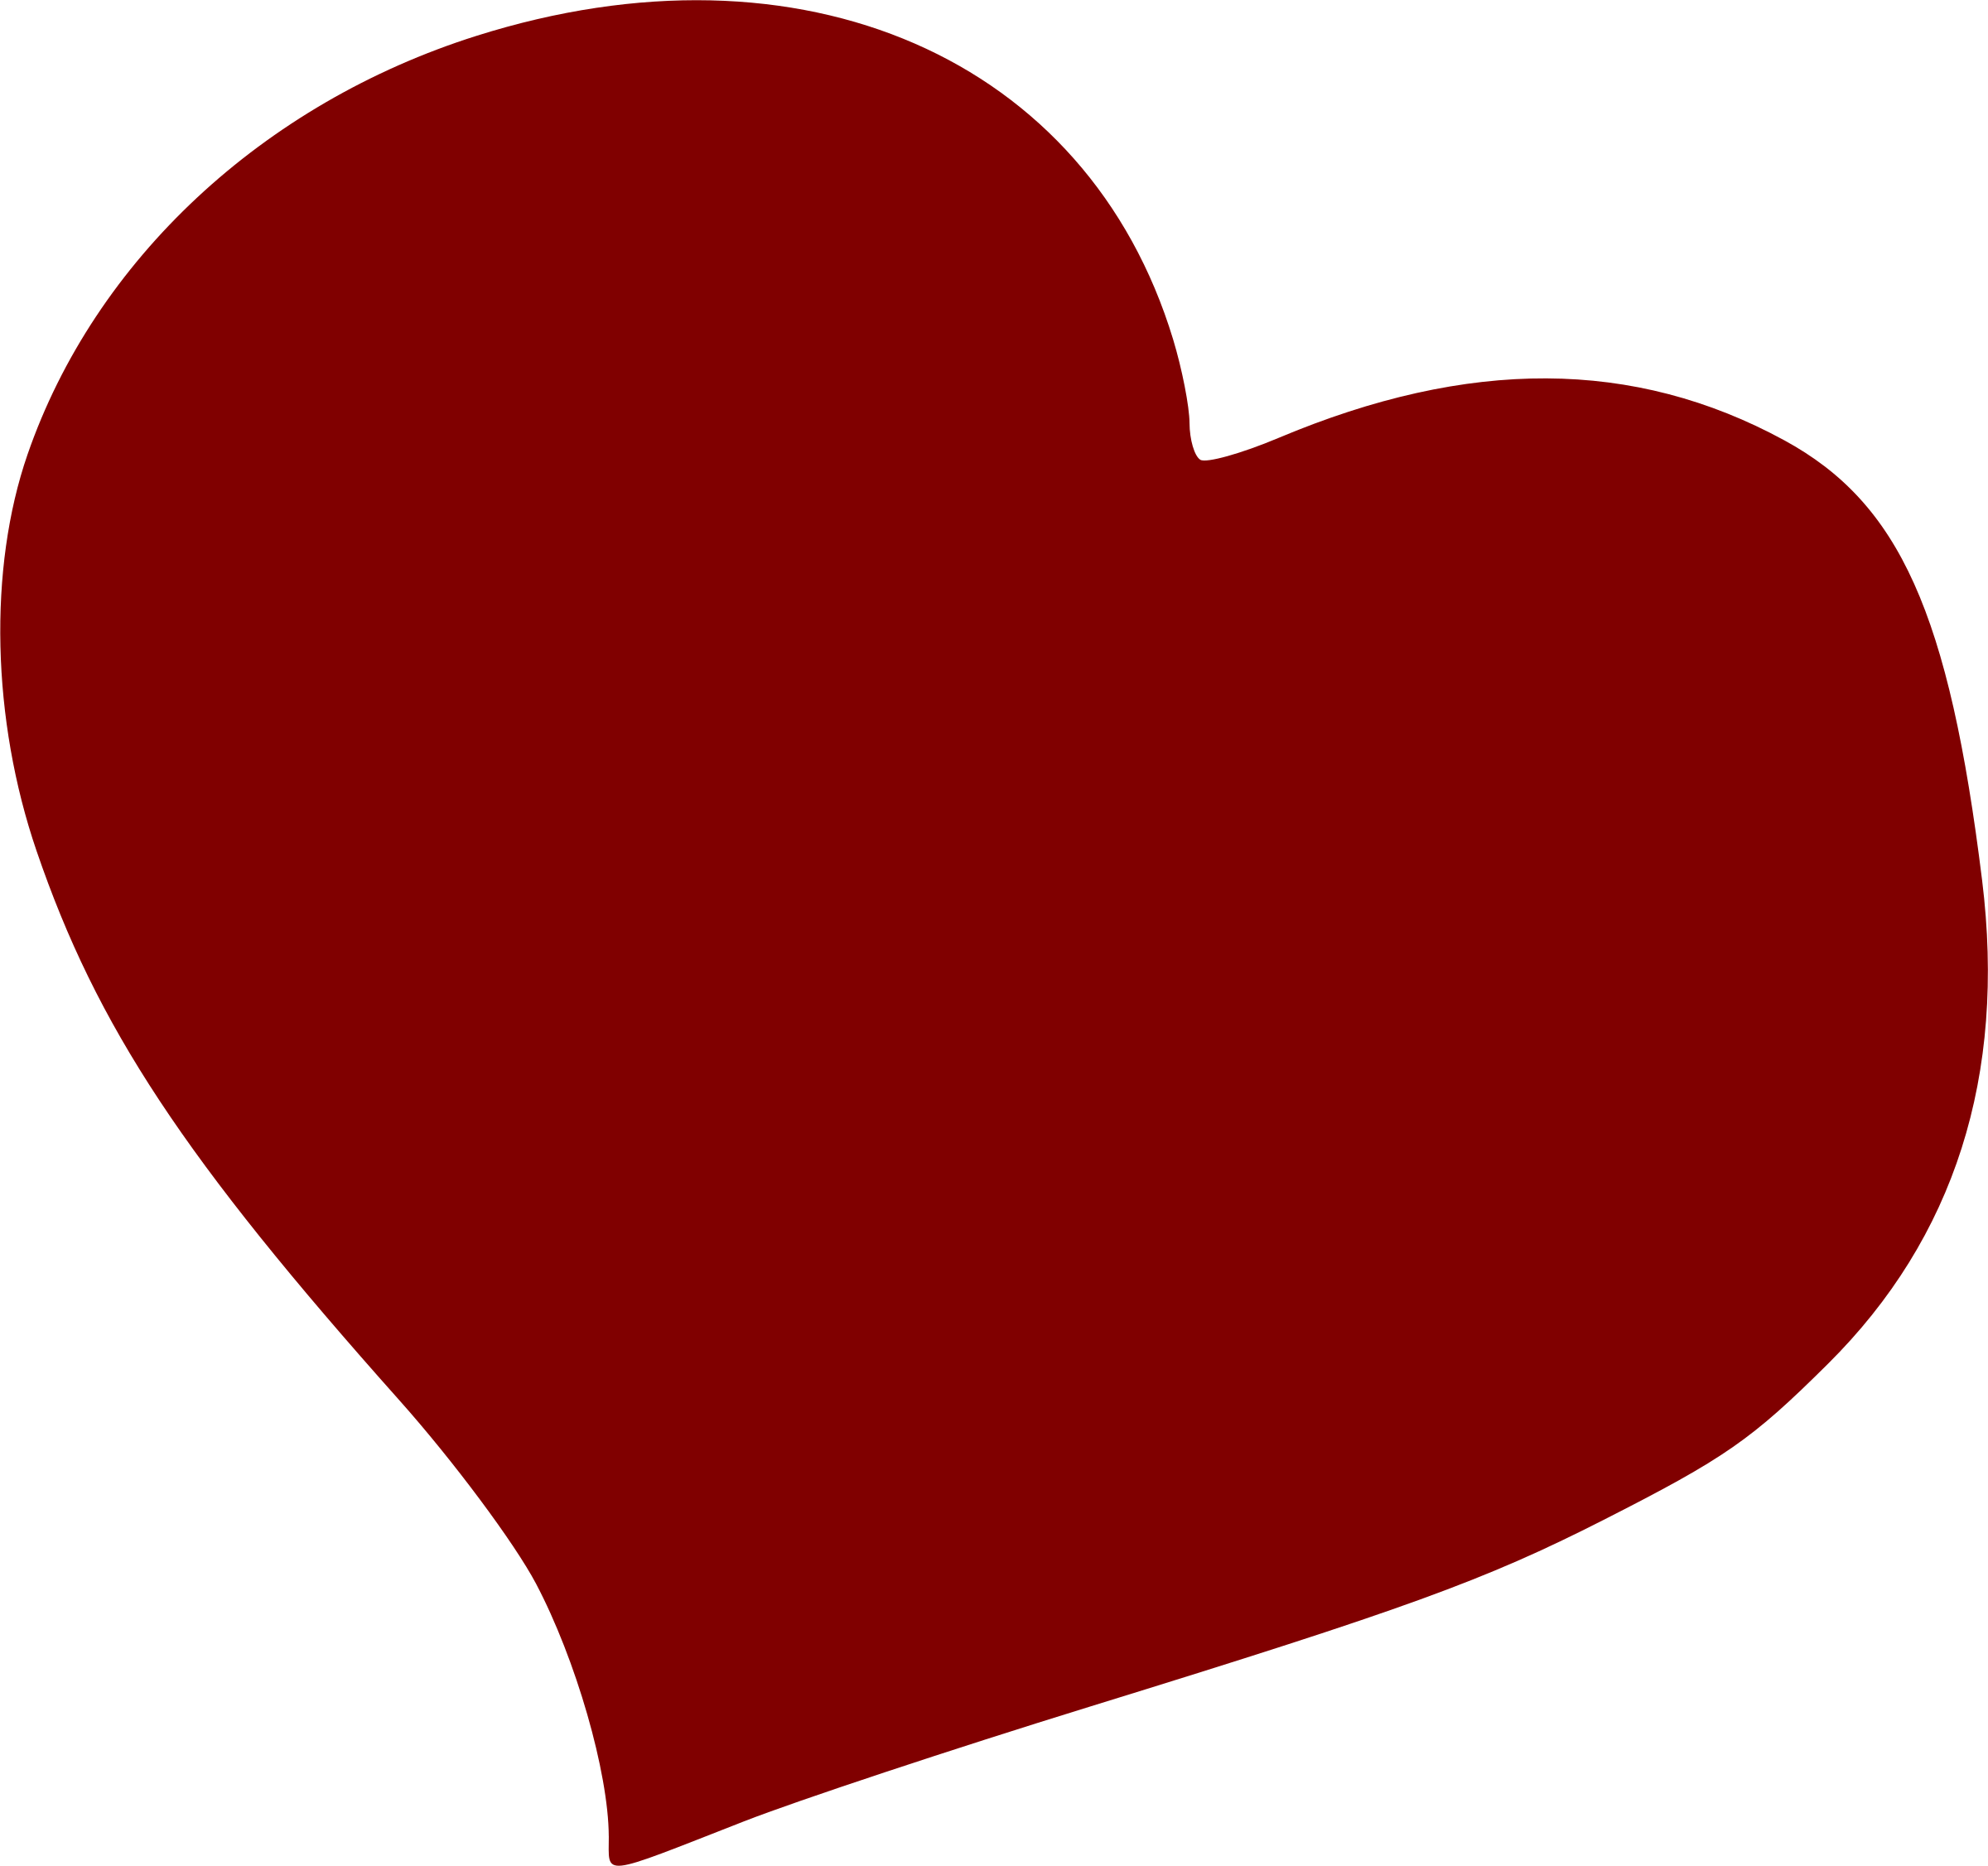 Simple heart clipart image black and white stock Clipart - Cutie Pop Heart (Simple)